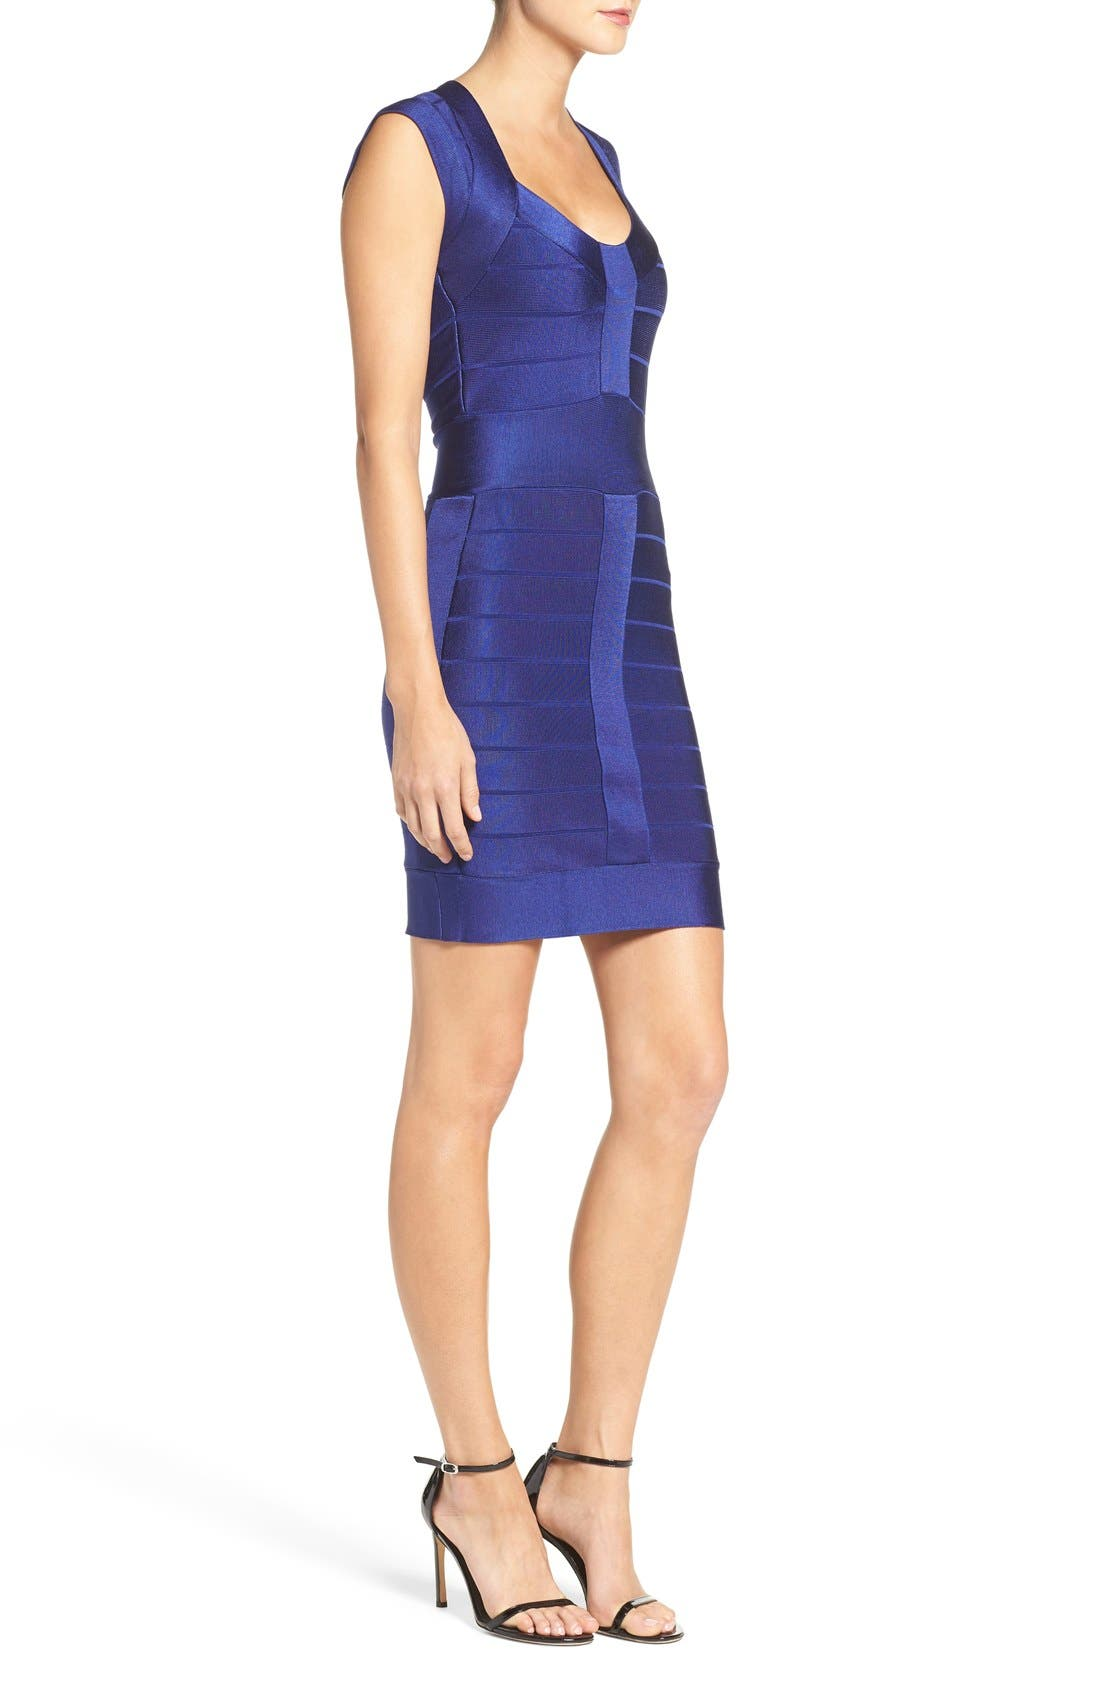 Spotlight Bandage Dress,                             Alternate thumbnail 7, color,                             431